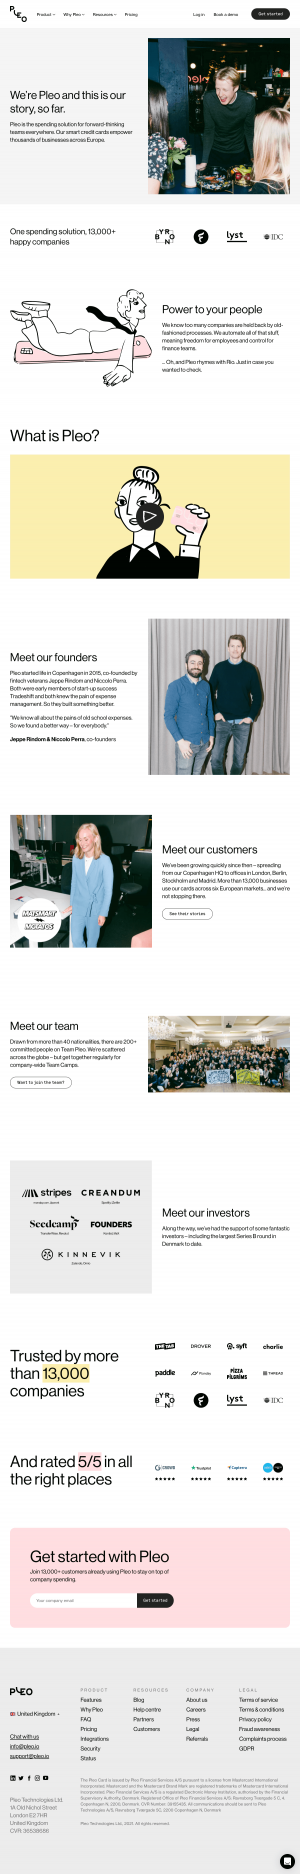 Pleo – About Us page